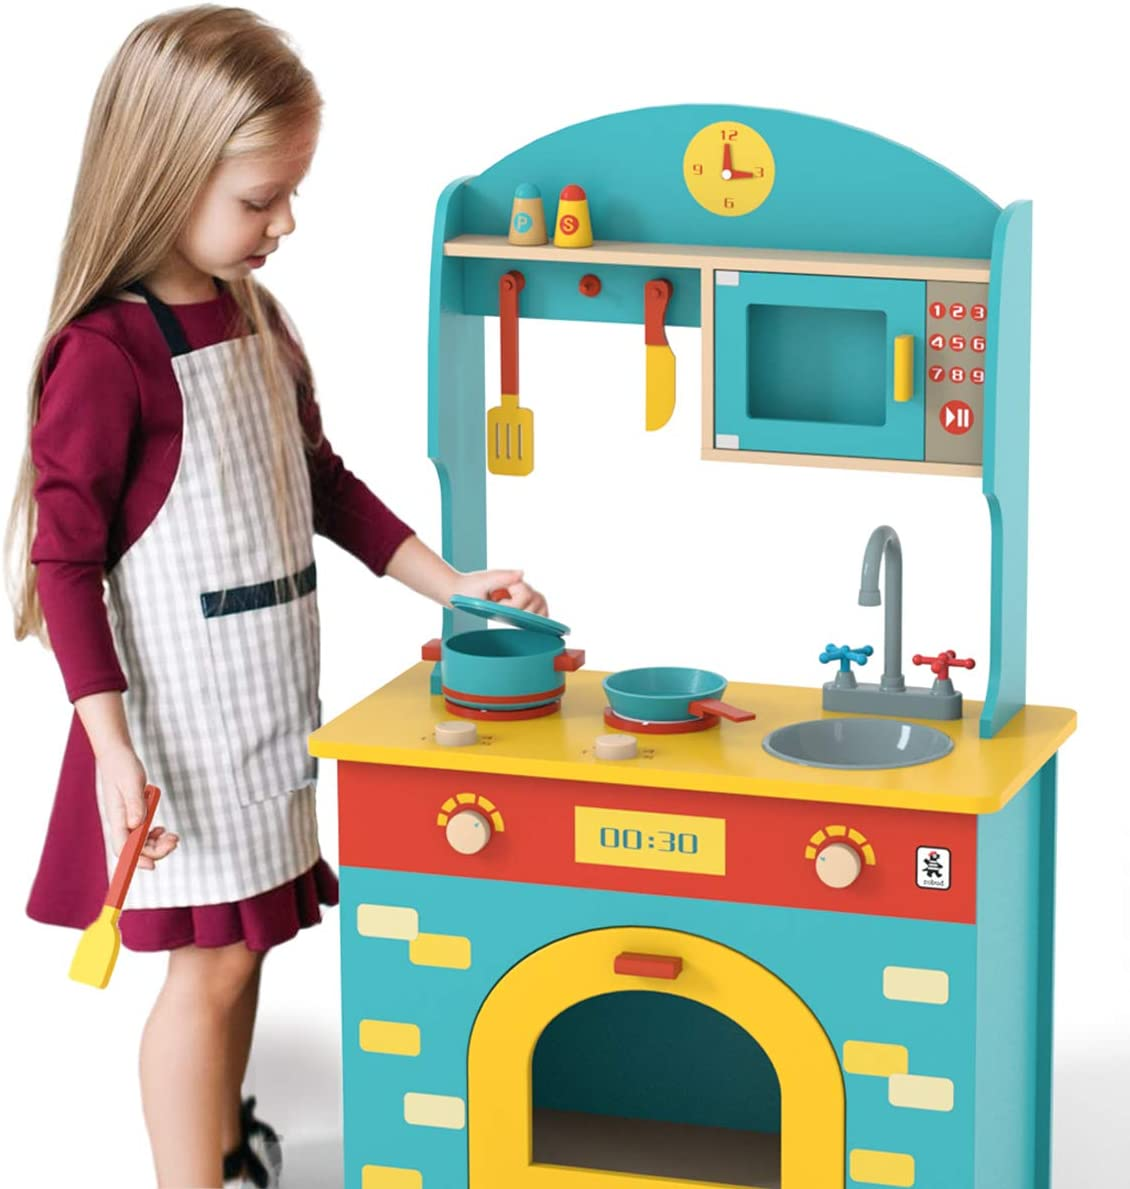 MyLohas San Antonio Mall Wooden Play Kitchen Special price Set for Toy fo Toddlers Kids Gift